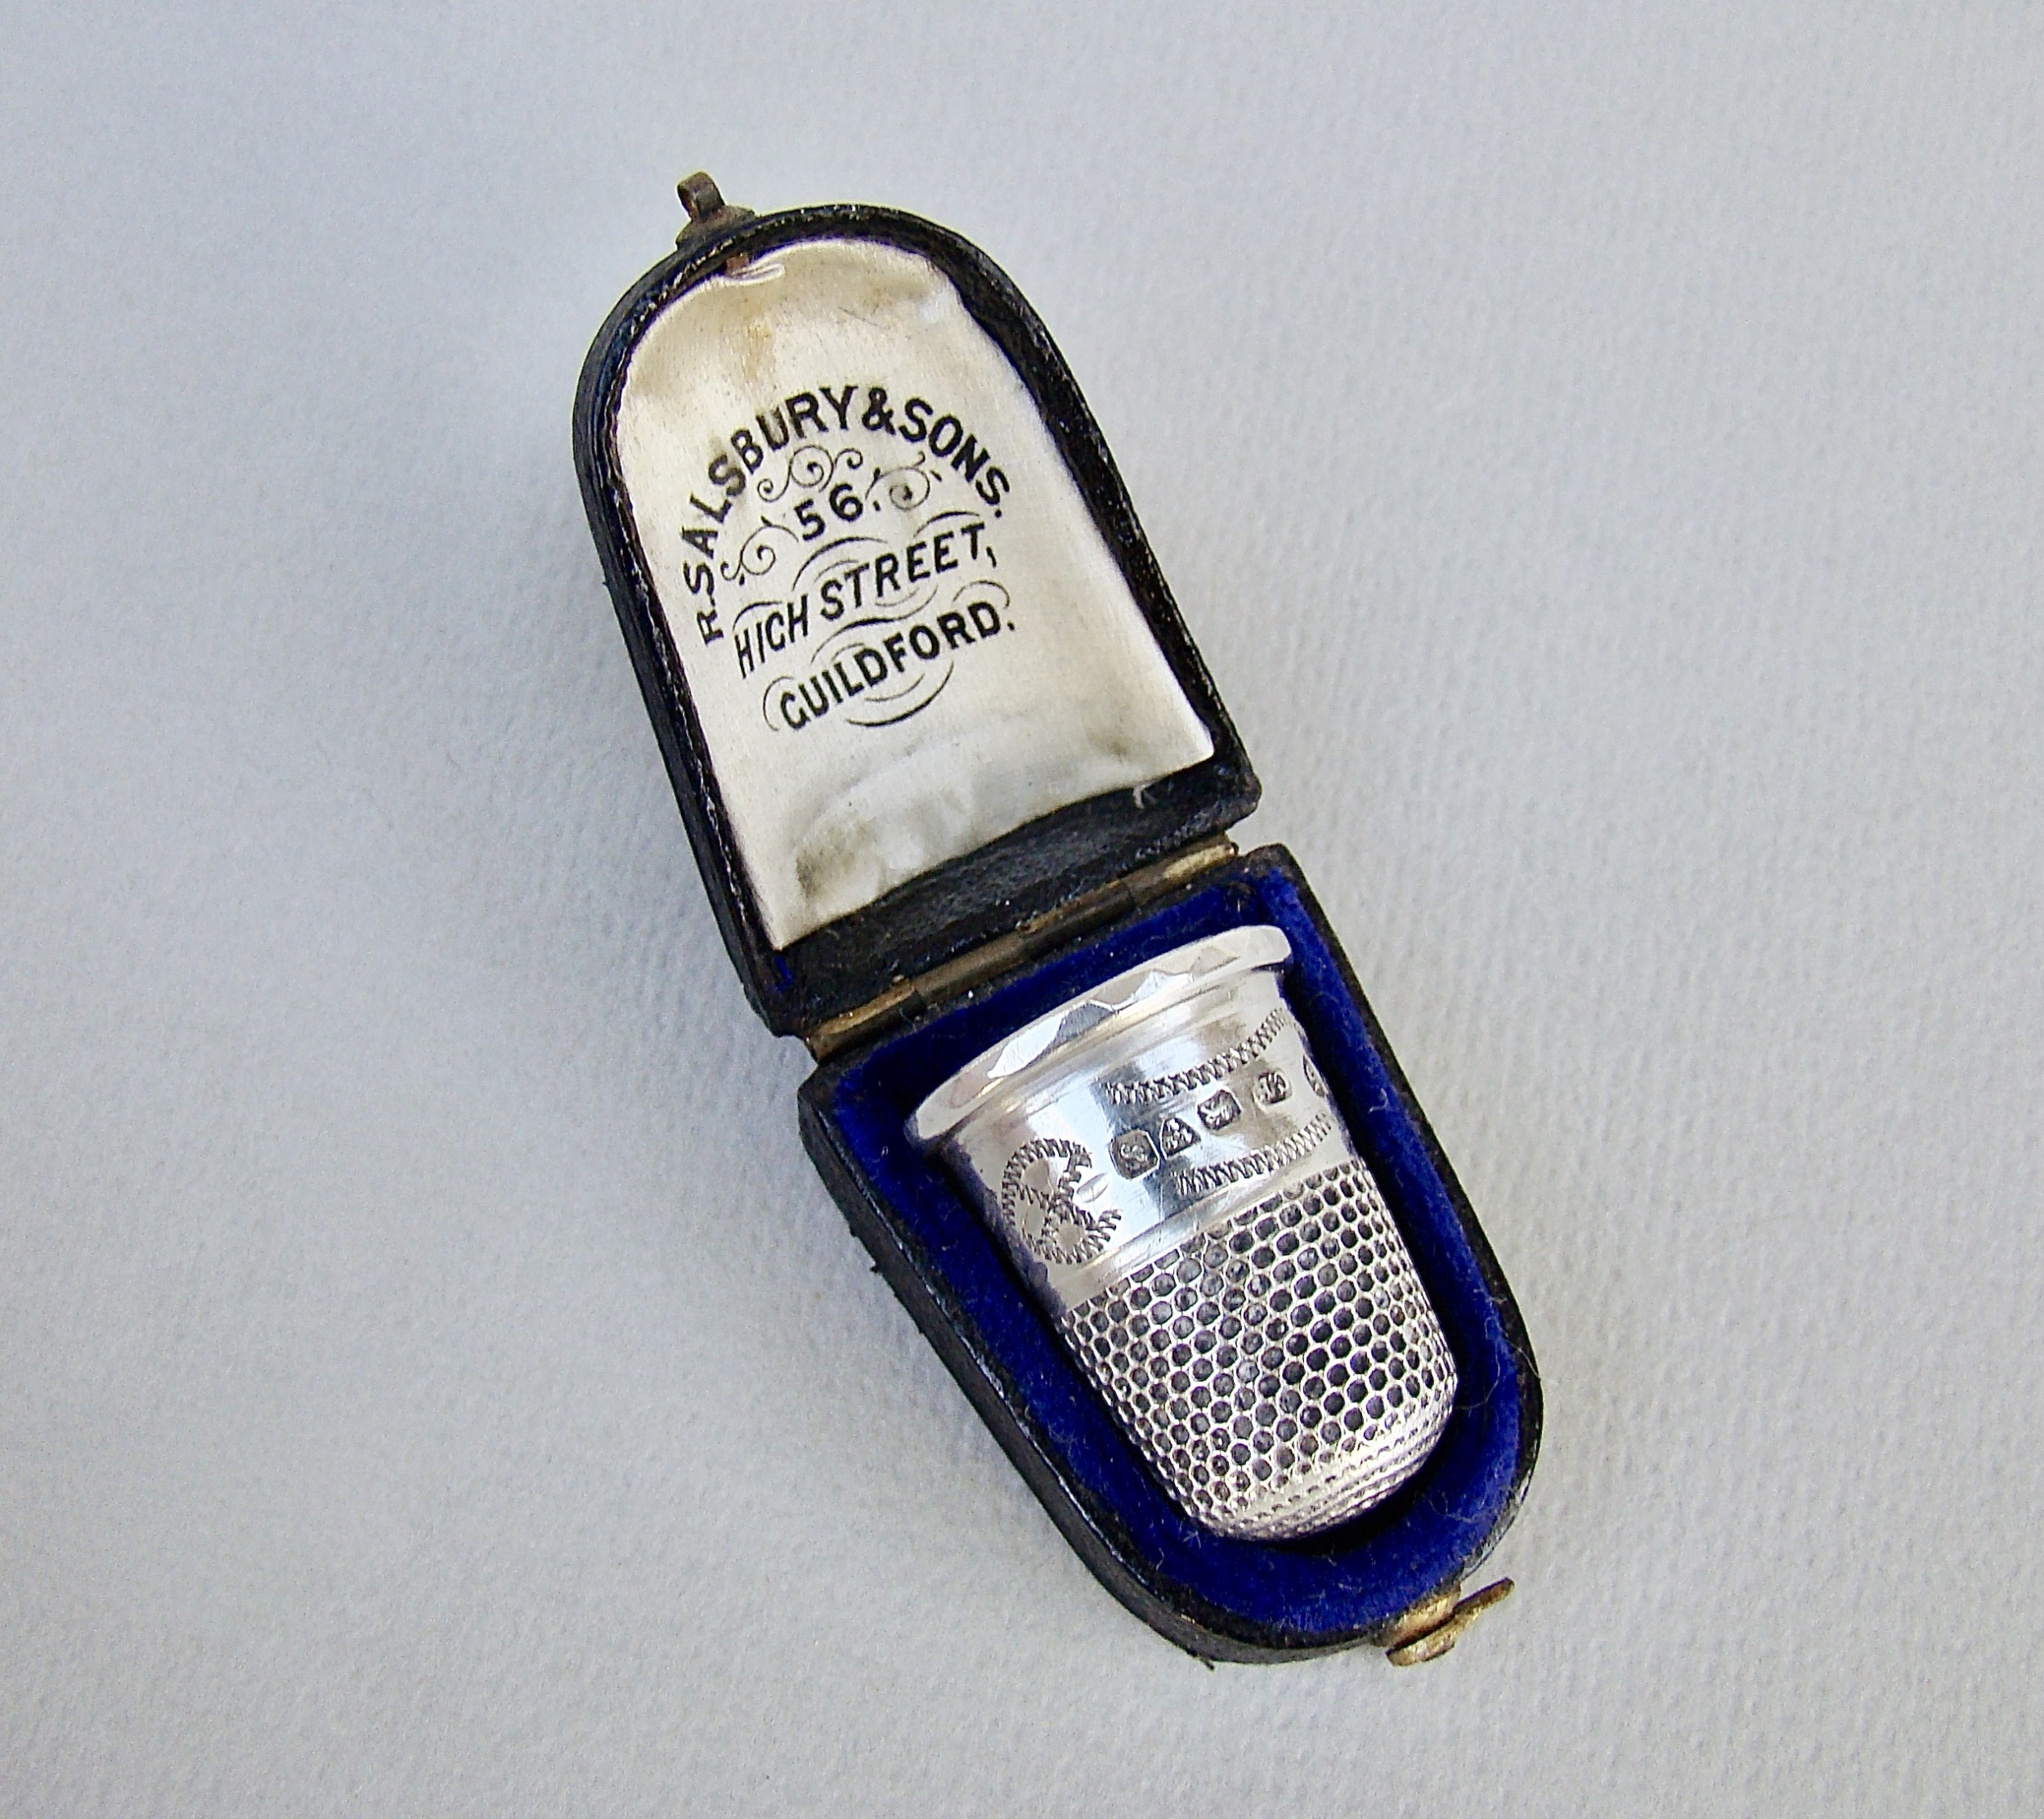 cased george v silver thimble by charles horner chester 1911